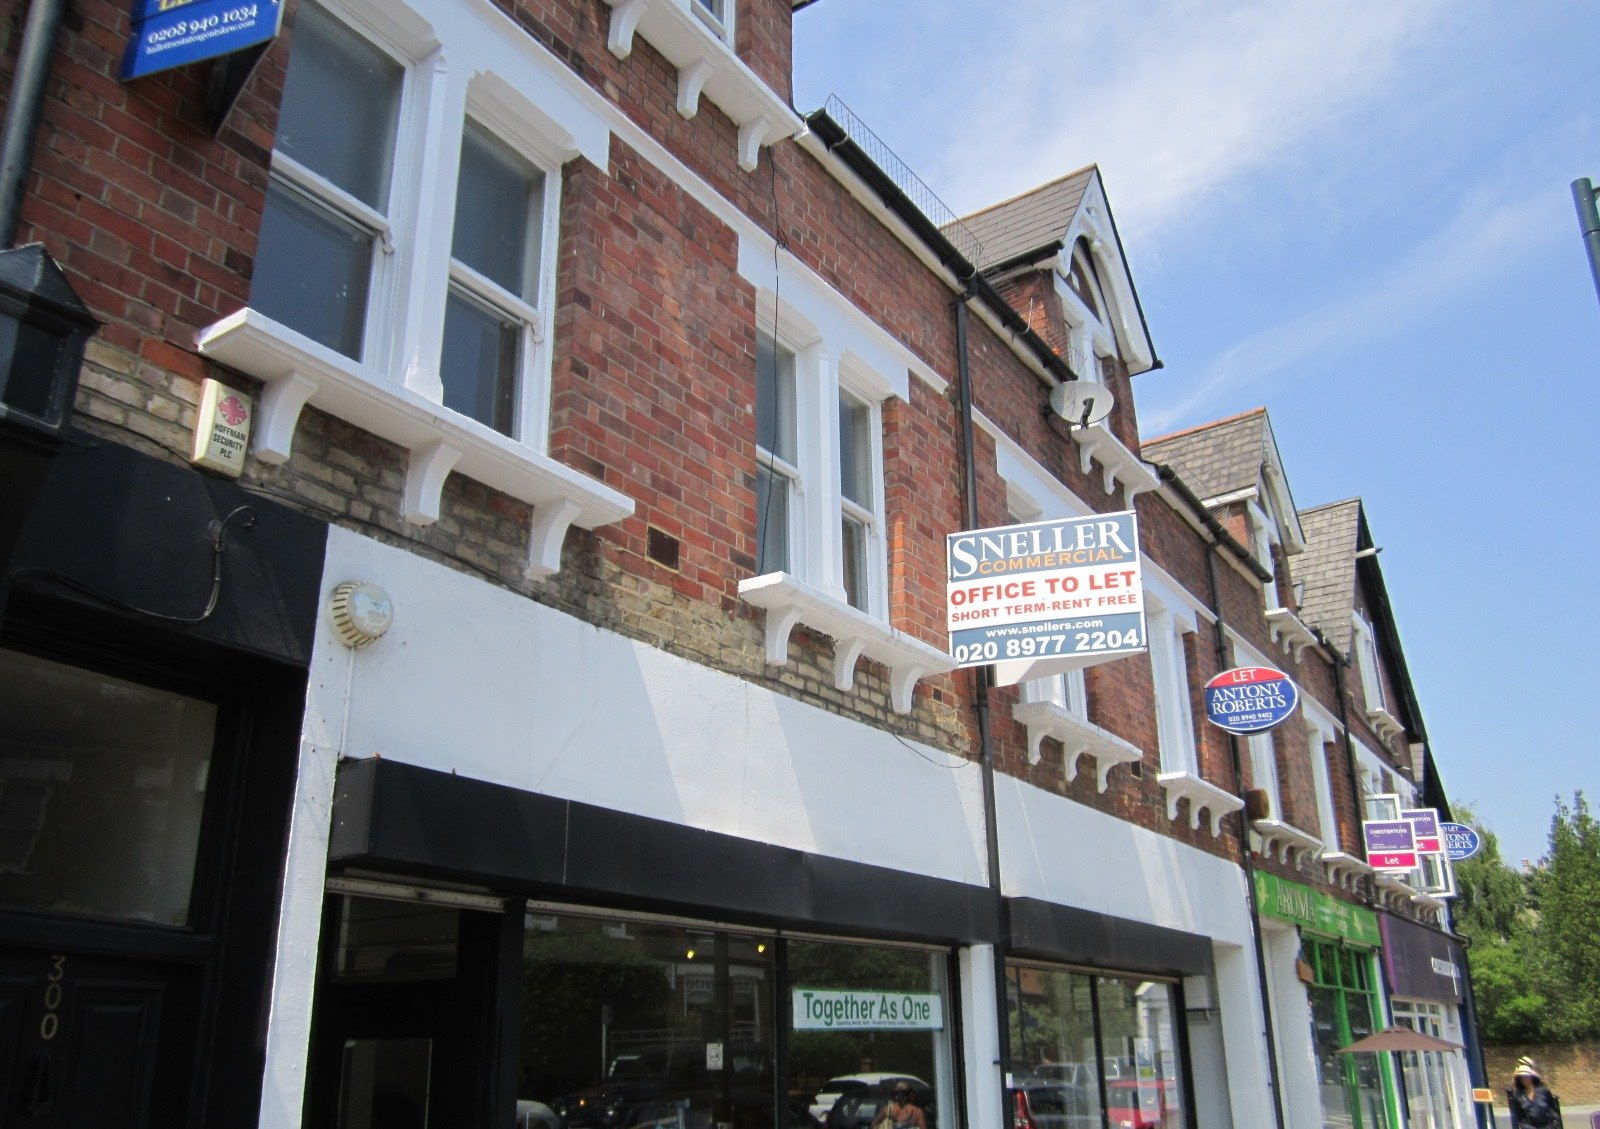 First Floor, 300 - 302 Sandycombe Road, TW9 3NG